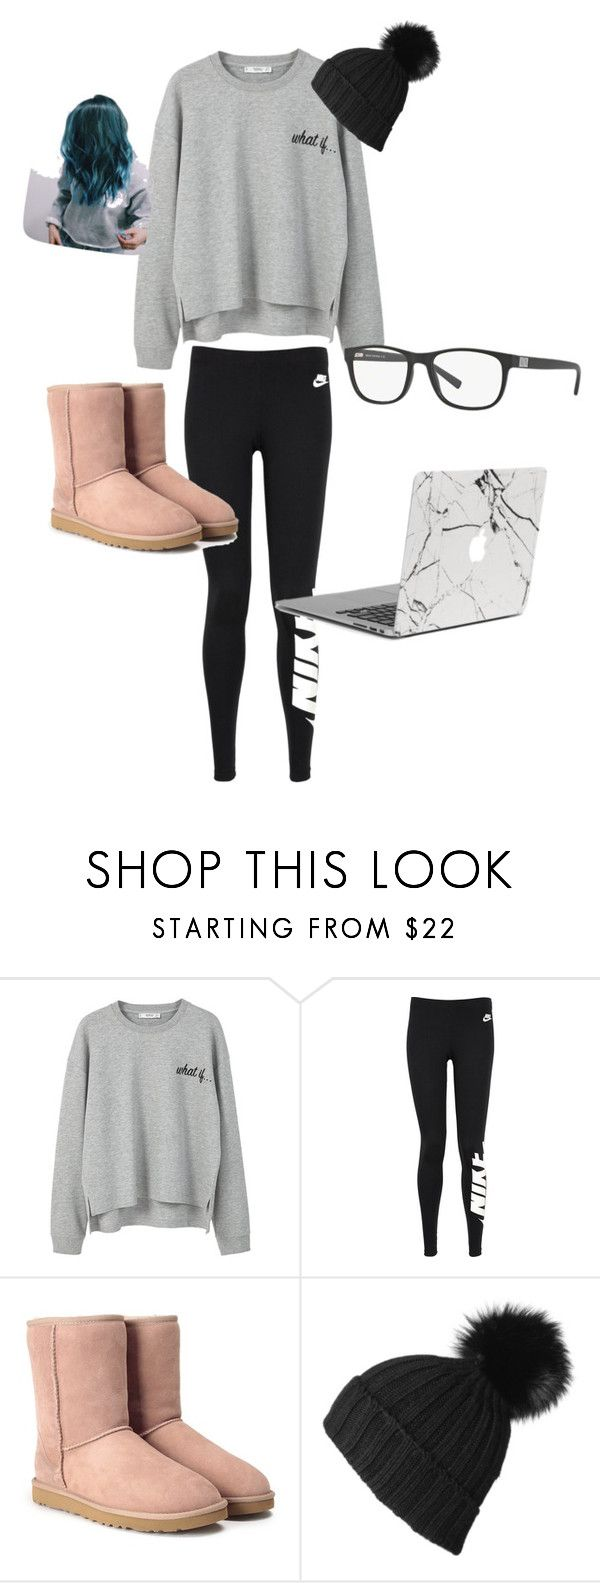 """""""Lazy winter weekend"""" by lovedance20 ❤ liked on Polyvore featuring MANGO, NIKE, UGG, Black and Armani Exchange"""